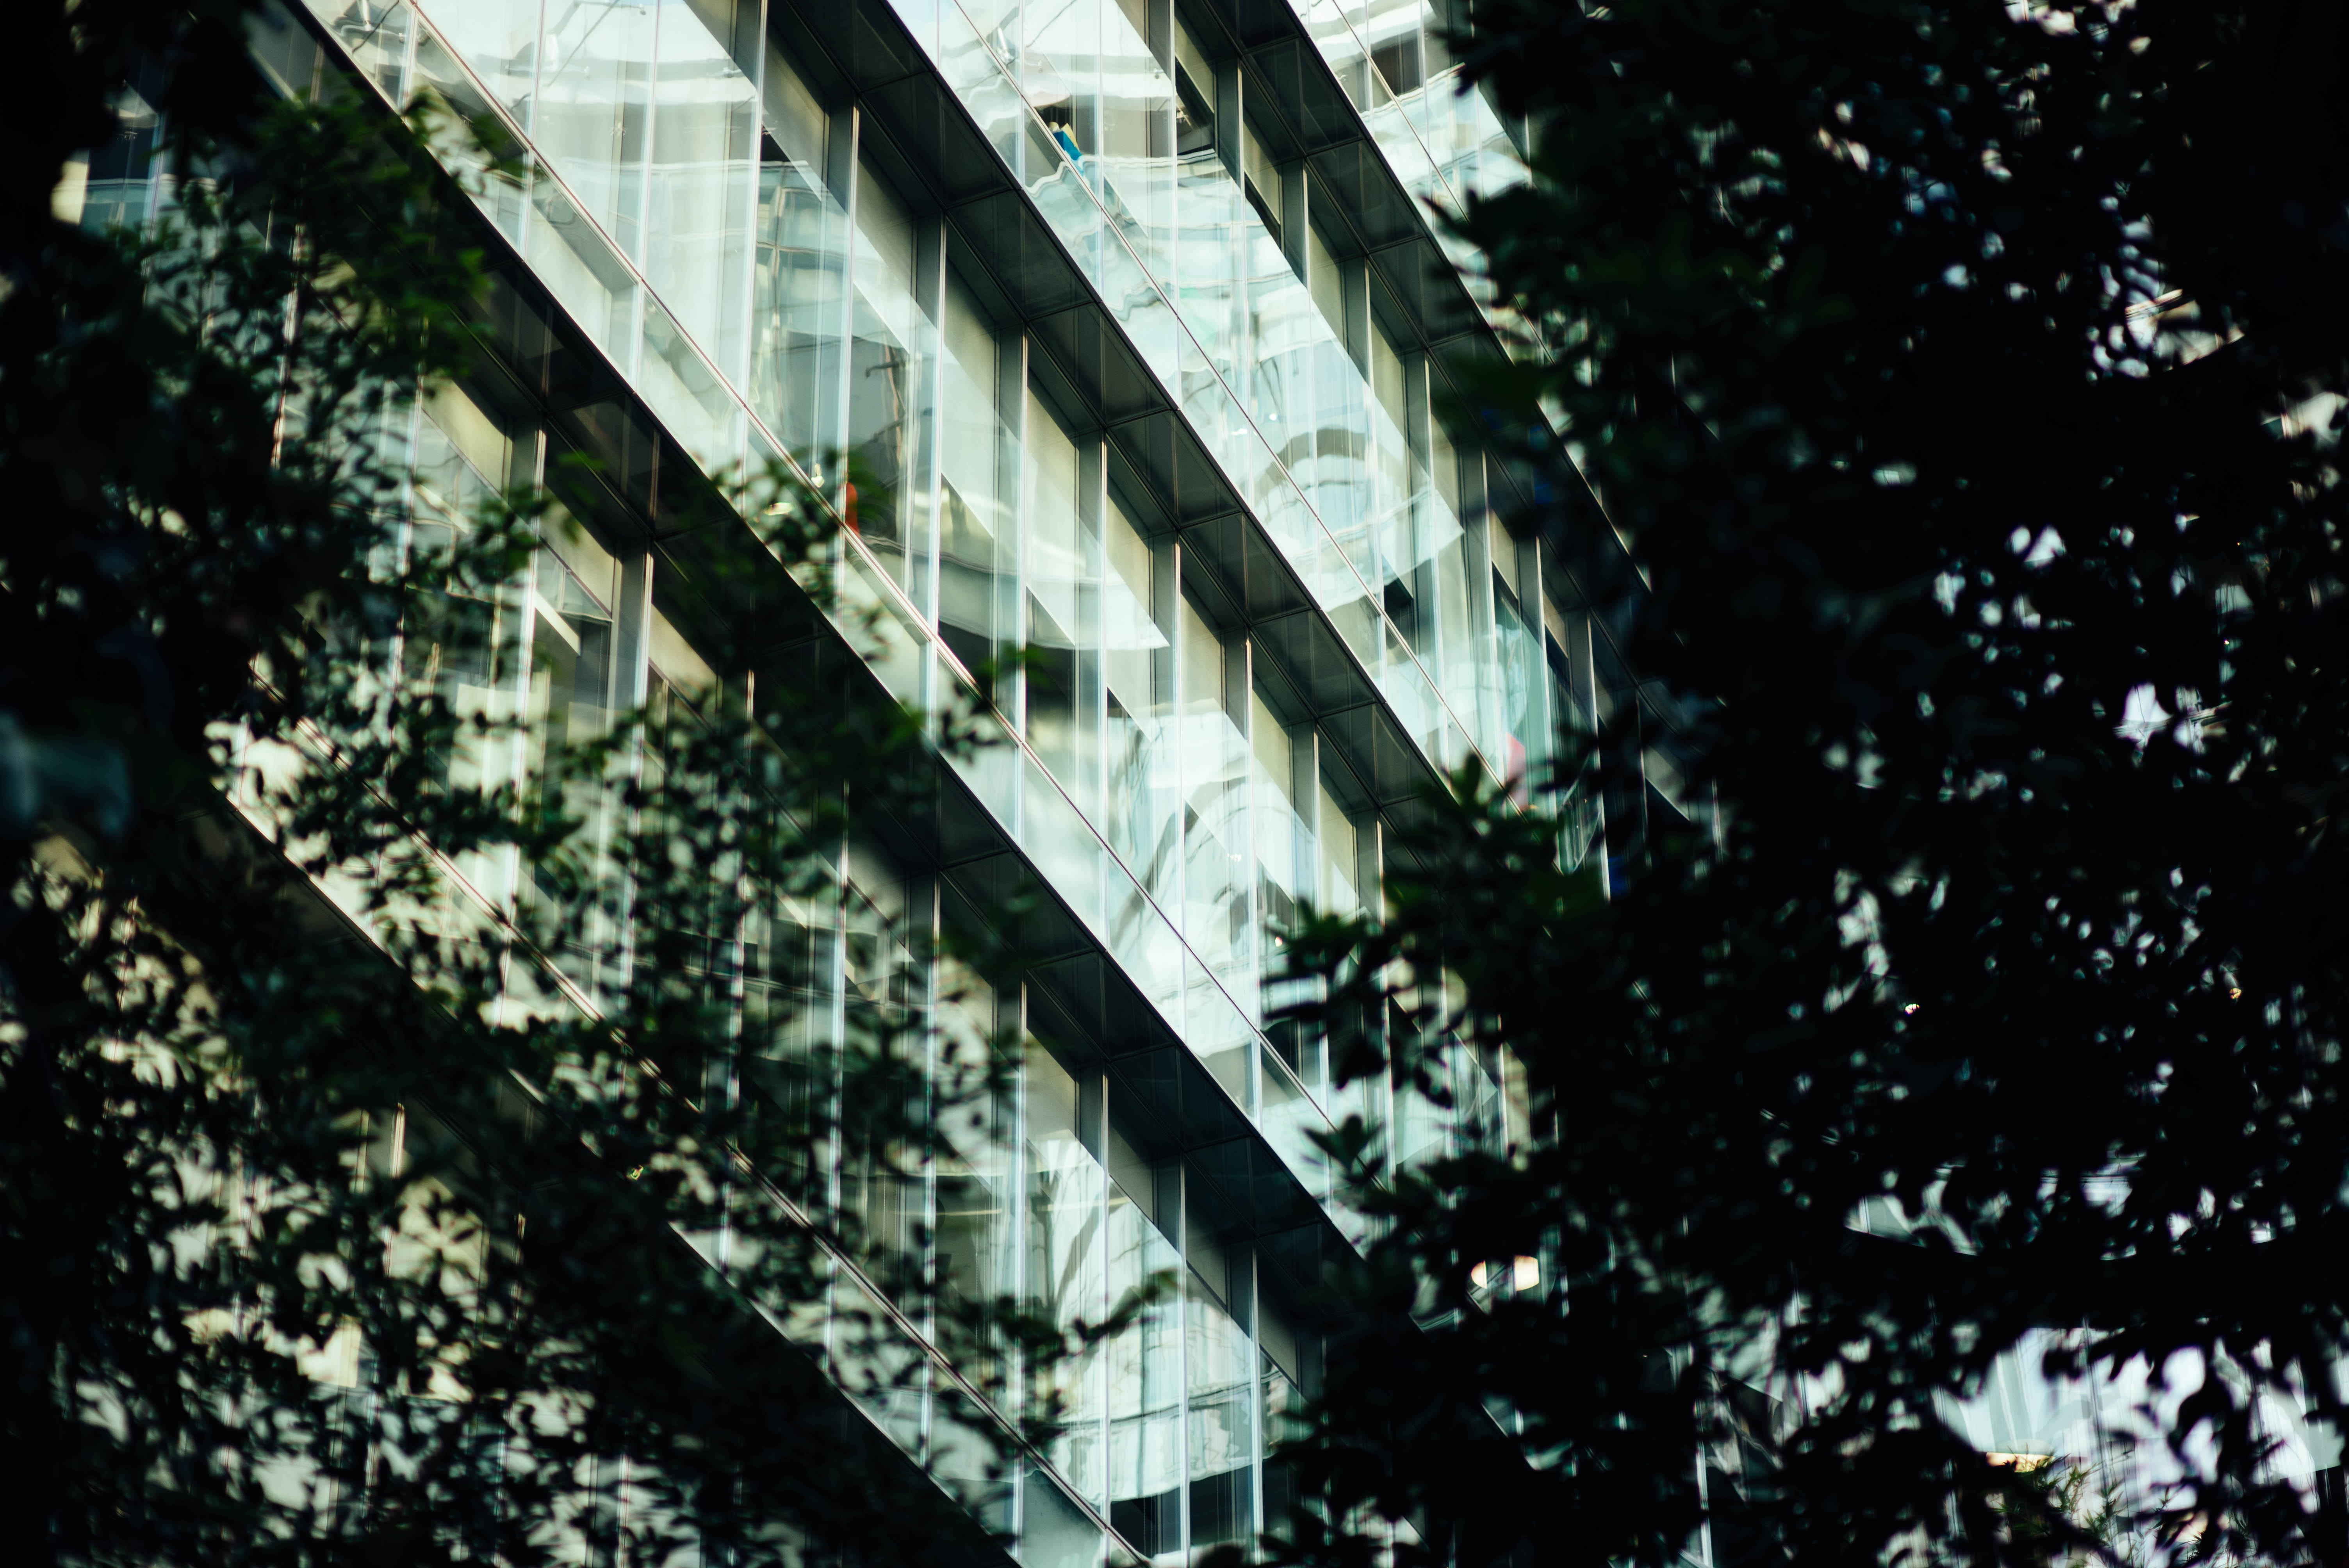 silhouette of trees near concrete building